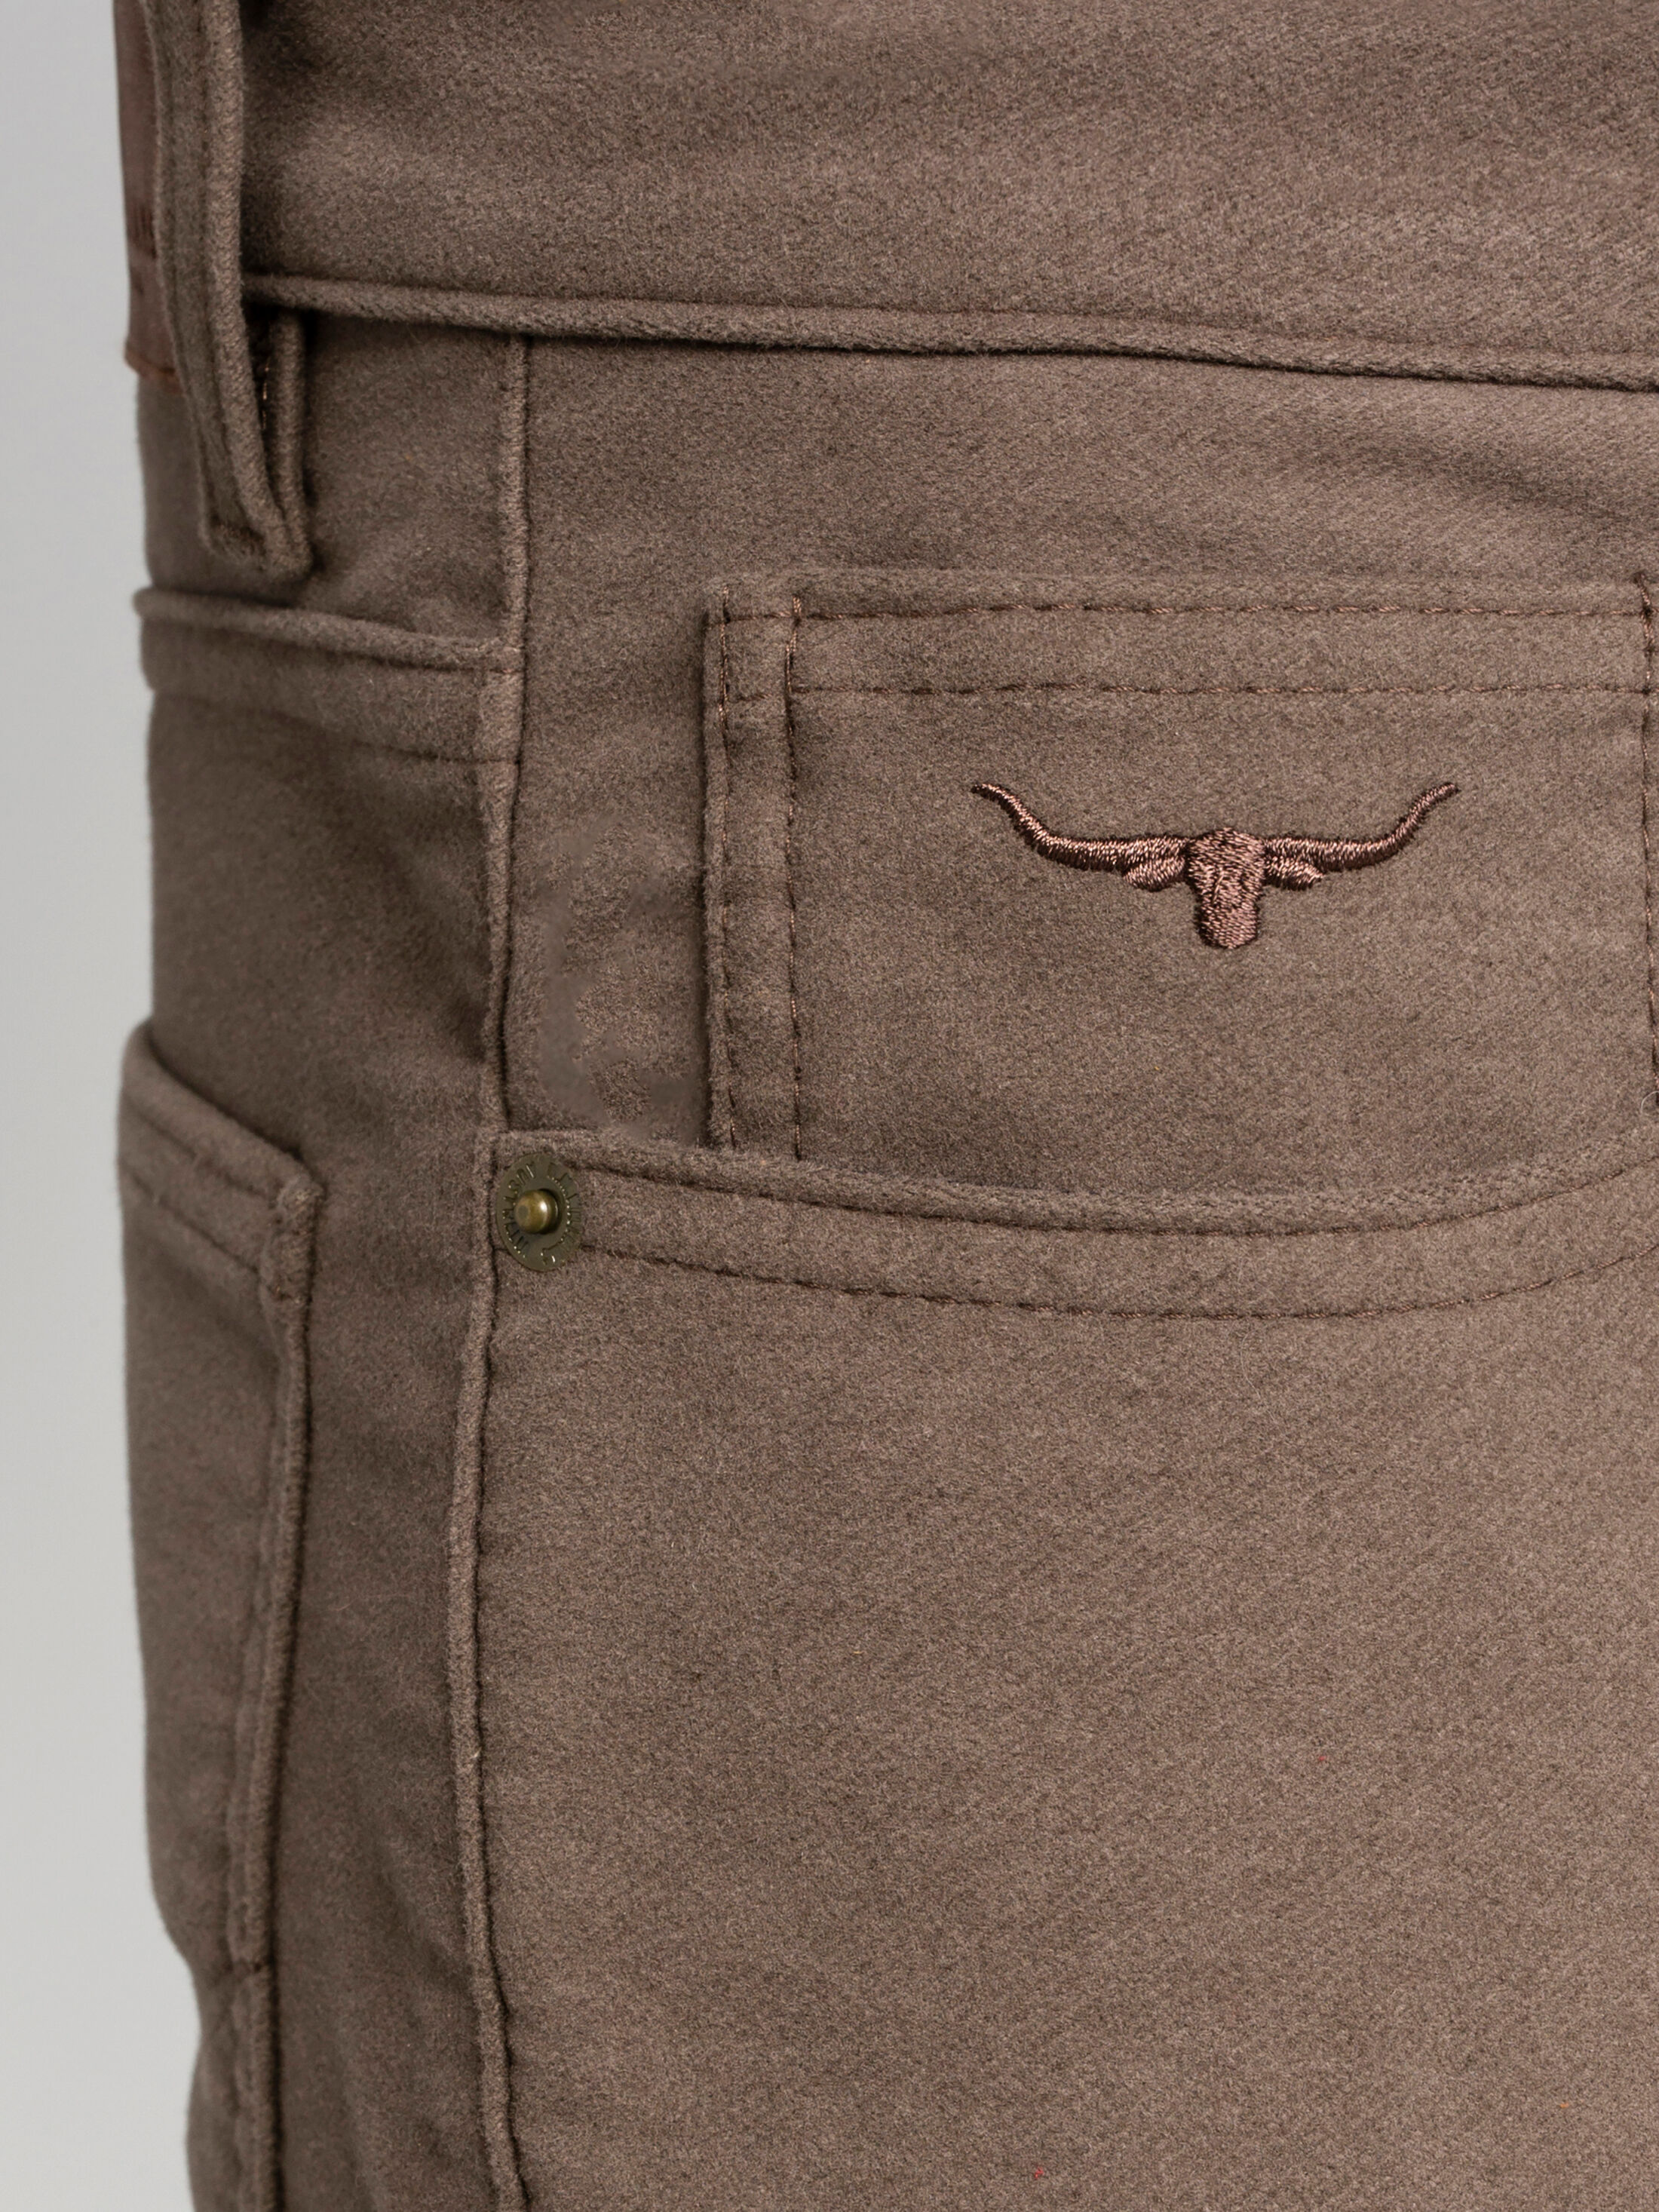 Ramco Jeans Navy \u0026 Taupe - Men's Jeans